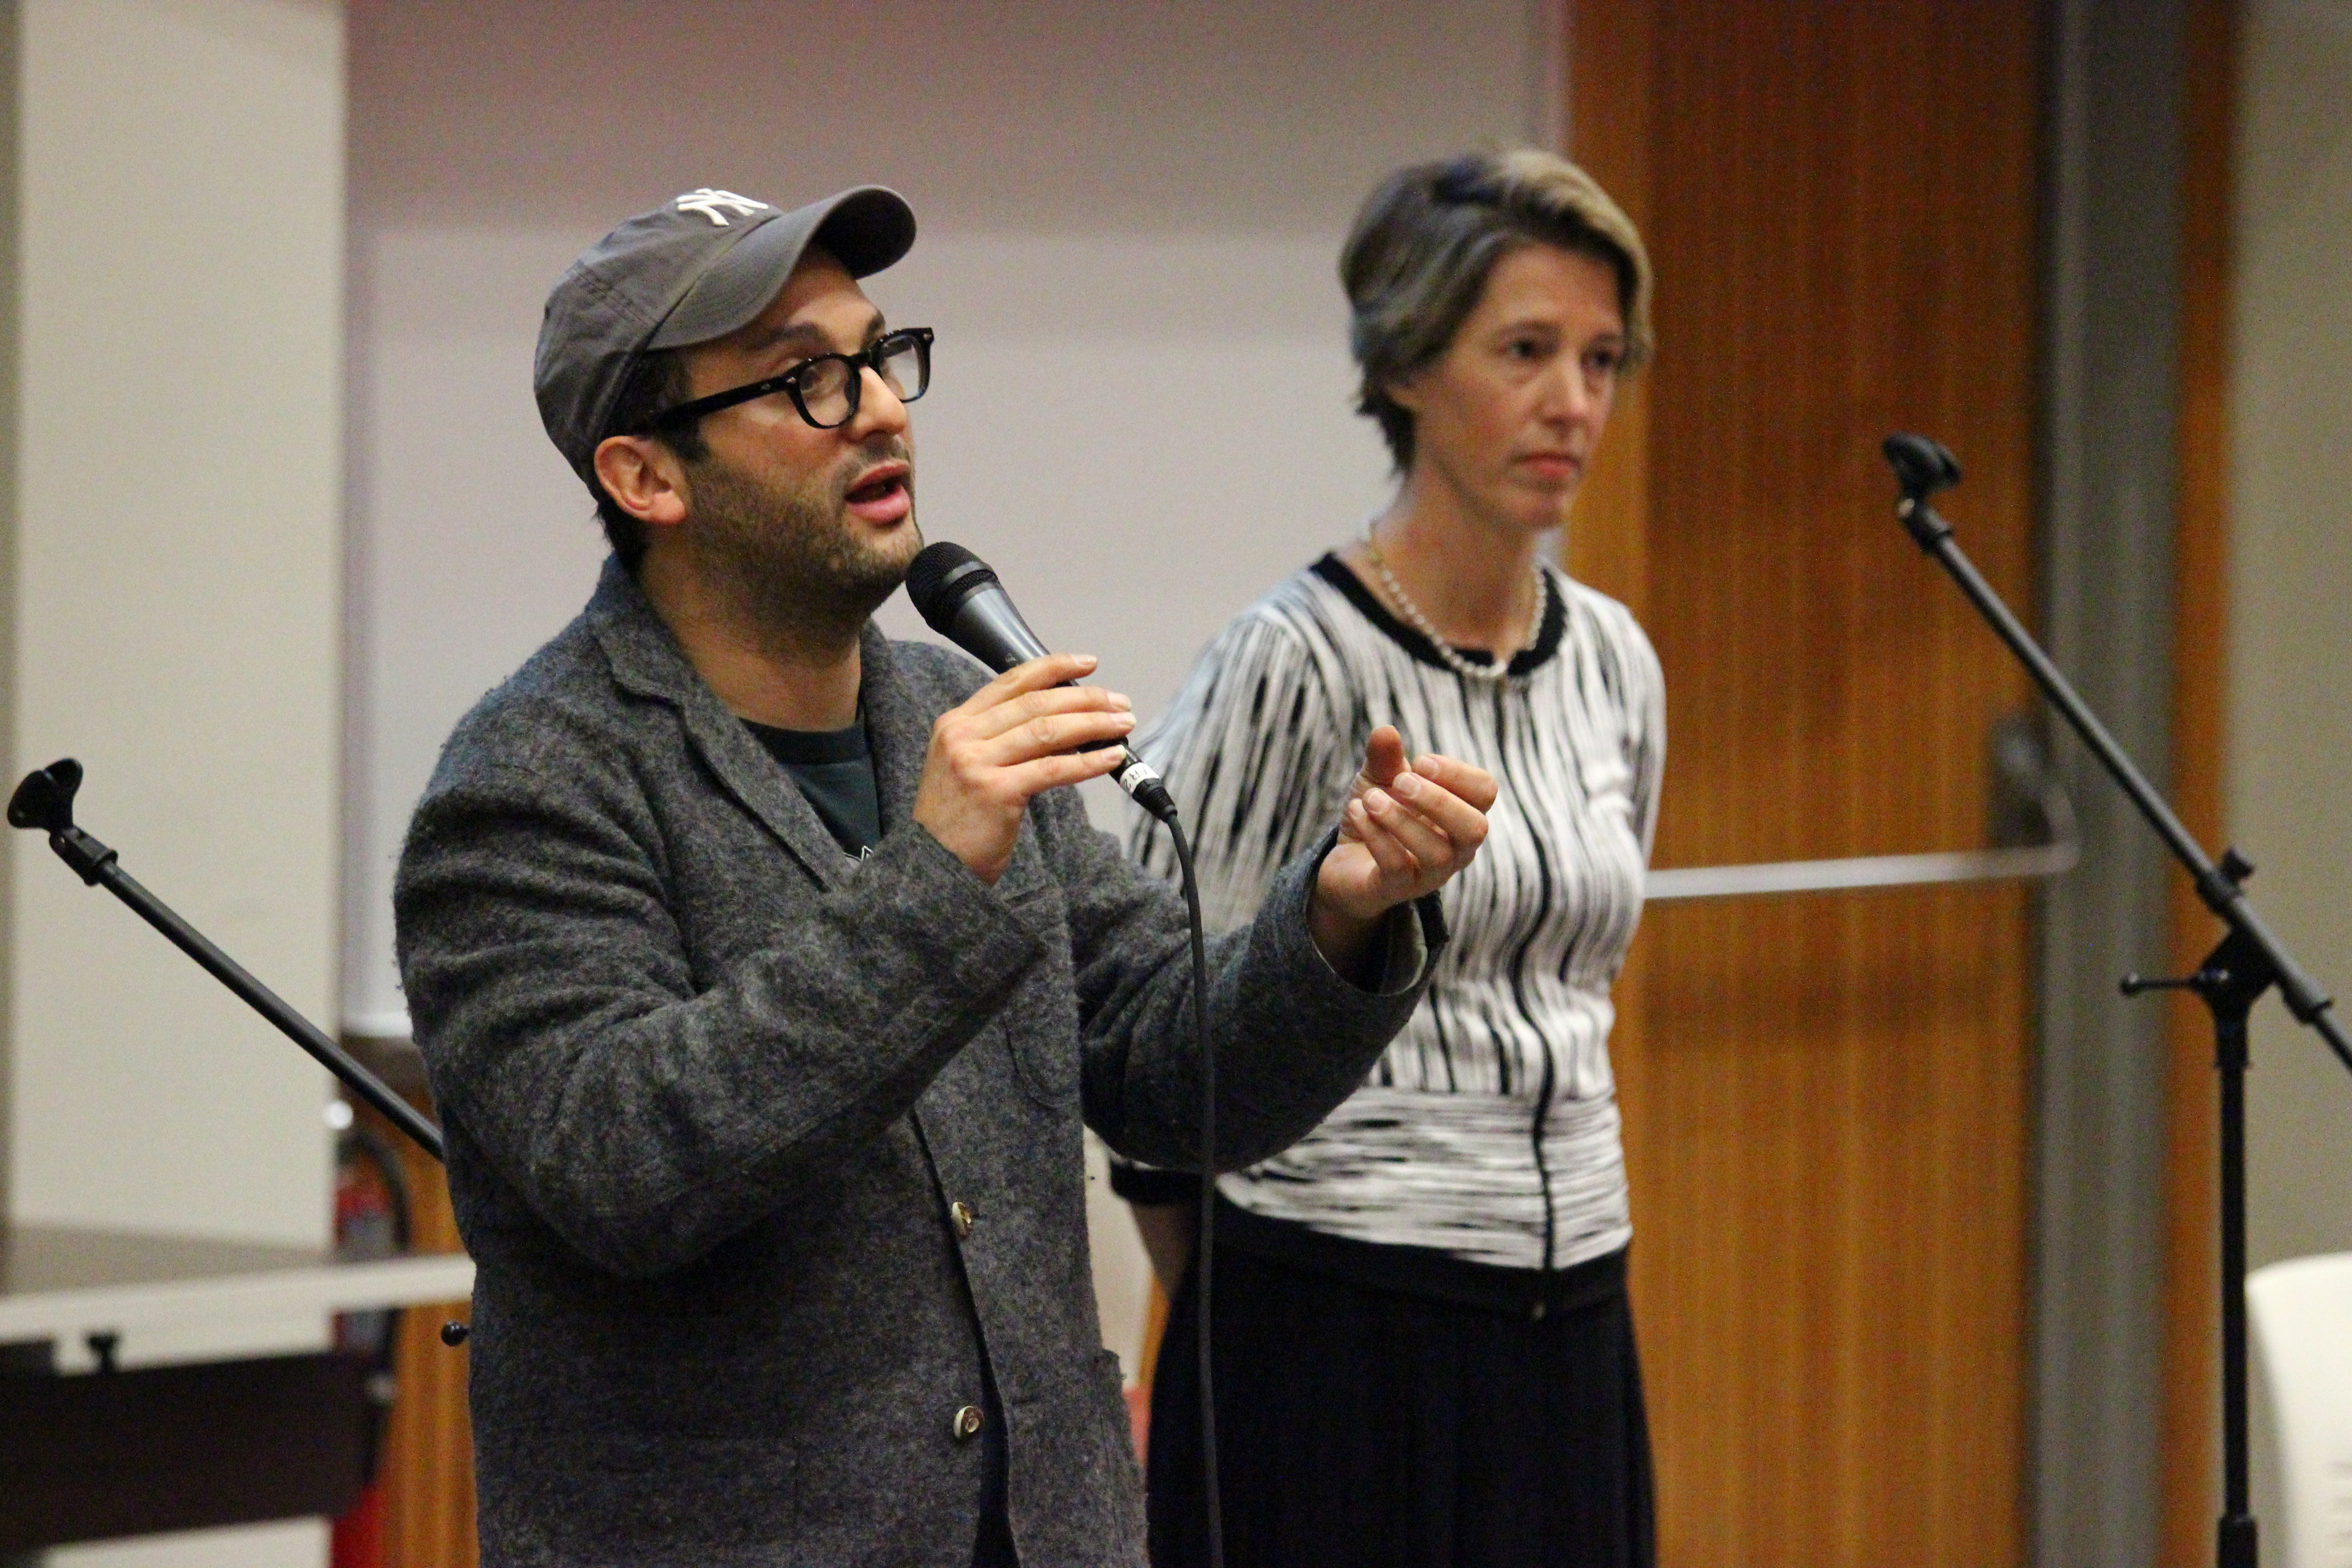 'Solar Home Companion' Brings Music and Grassroots Activism to Geneseo